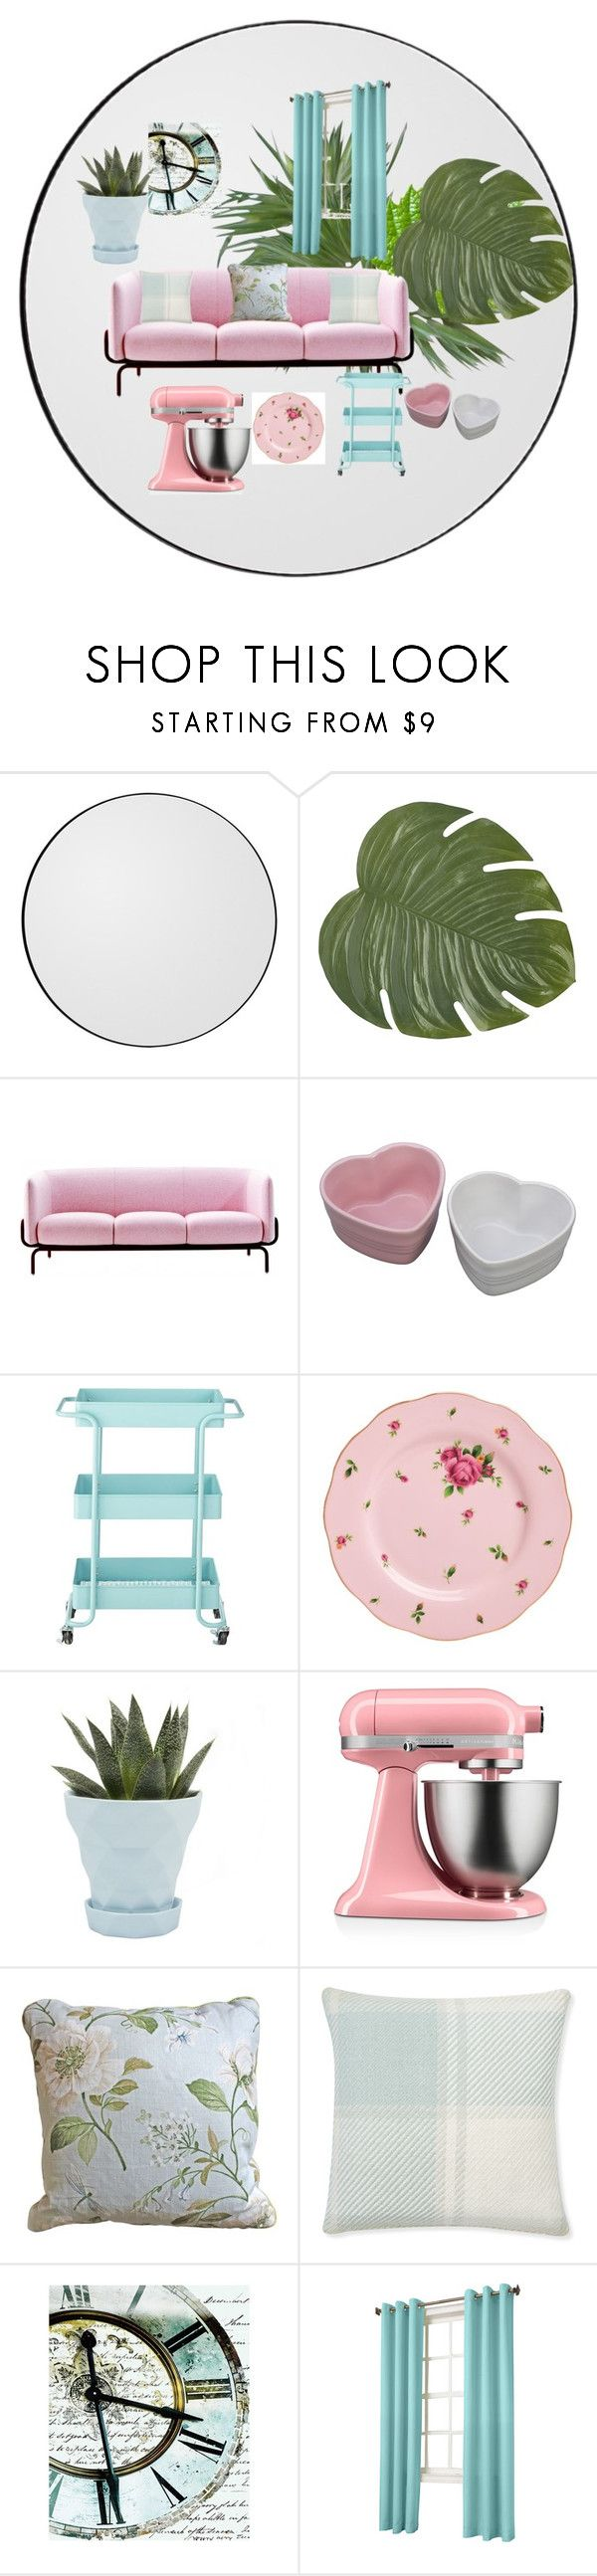 """""""pastelový dekor"""" by ruza2323 ❤ liked on Polyvore featuring interior, interiors, interior design, home, home decor, interior decorating, Pier 1 Imports, MOROSO, Home Decorators Collection and Royal Albert"""